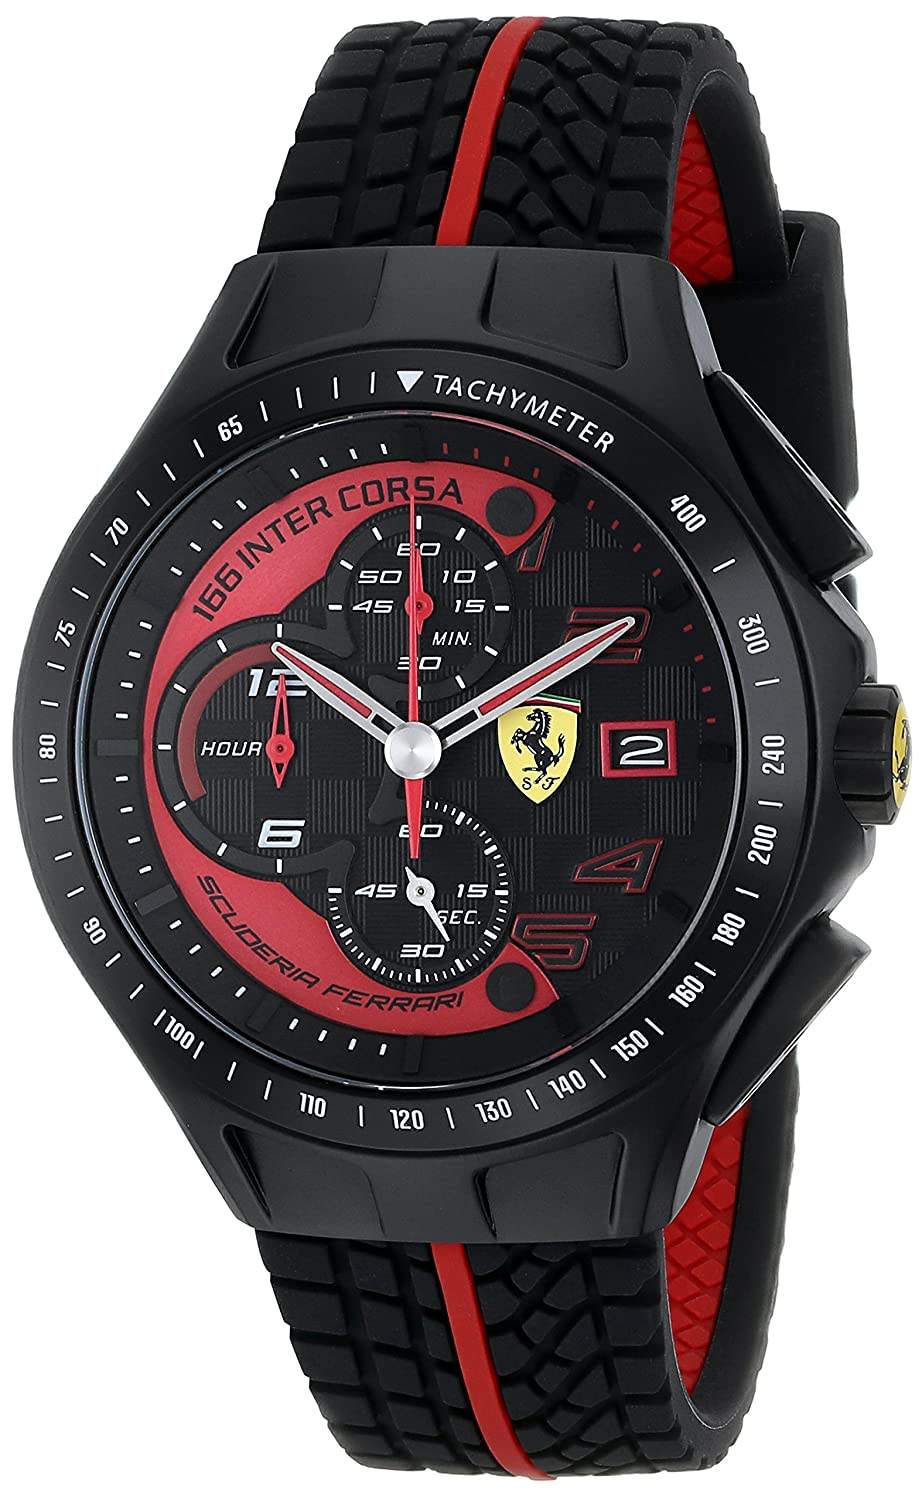 larger images view to ferrari scuderia swiss luxury watches click in here